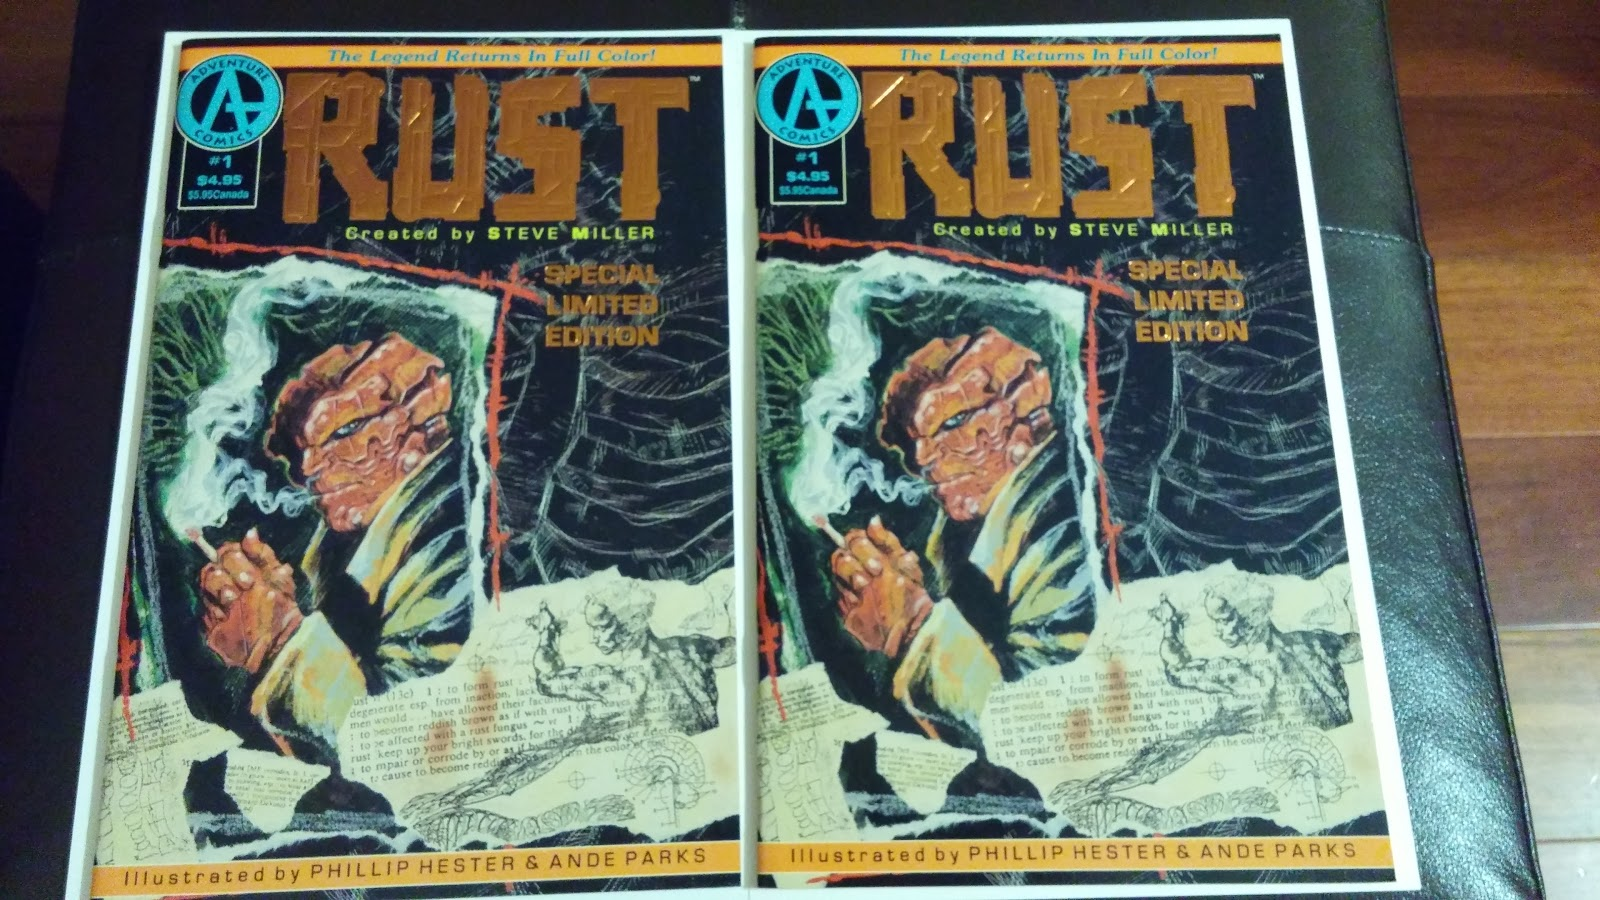 Comic Book Picker: $1 bin pick up - Rust #1 Special Edition